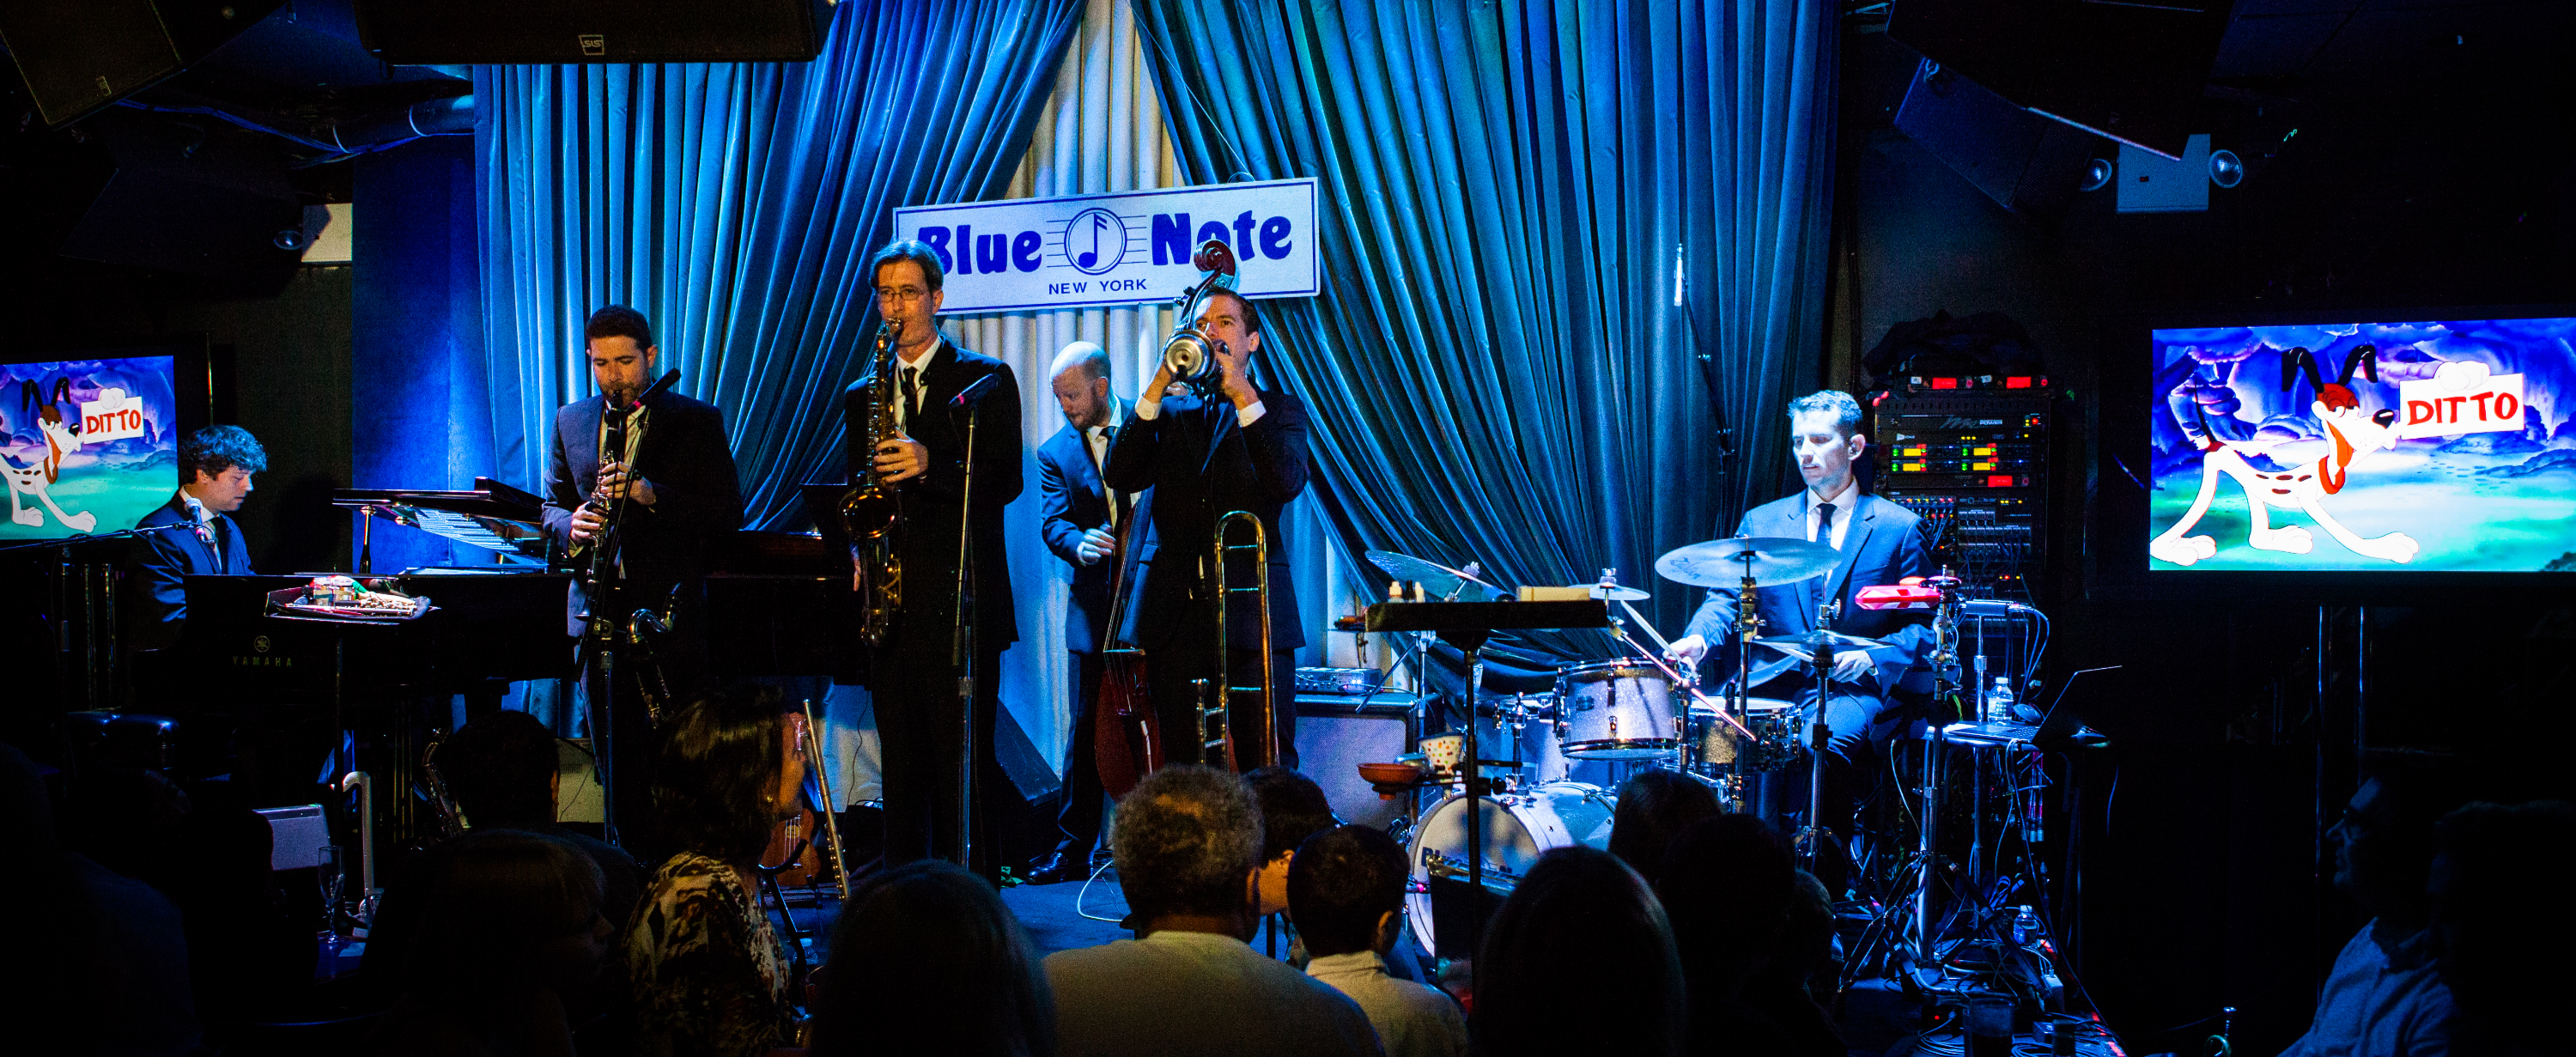 TQC Blue Note-14_edited